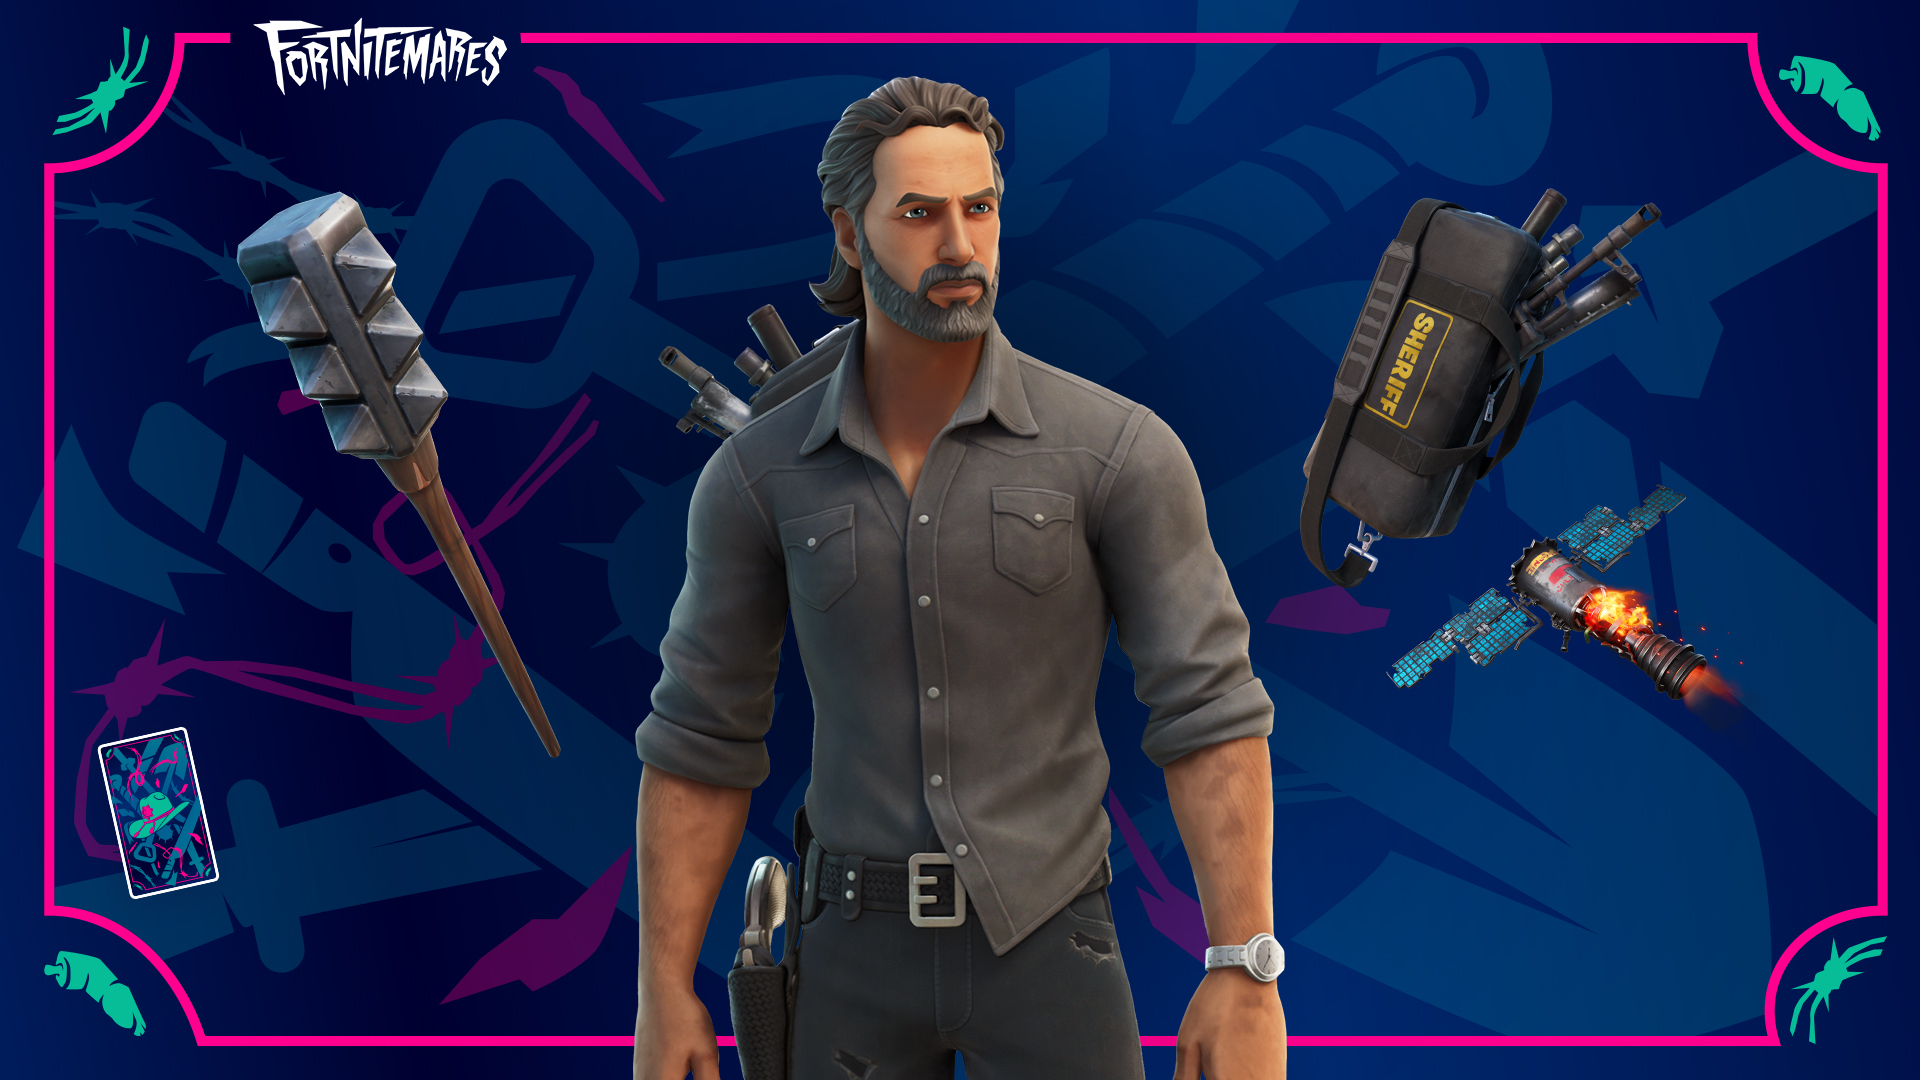 New The Walking Dead items in Fortnite (Image: Epic Games)